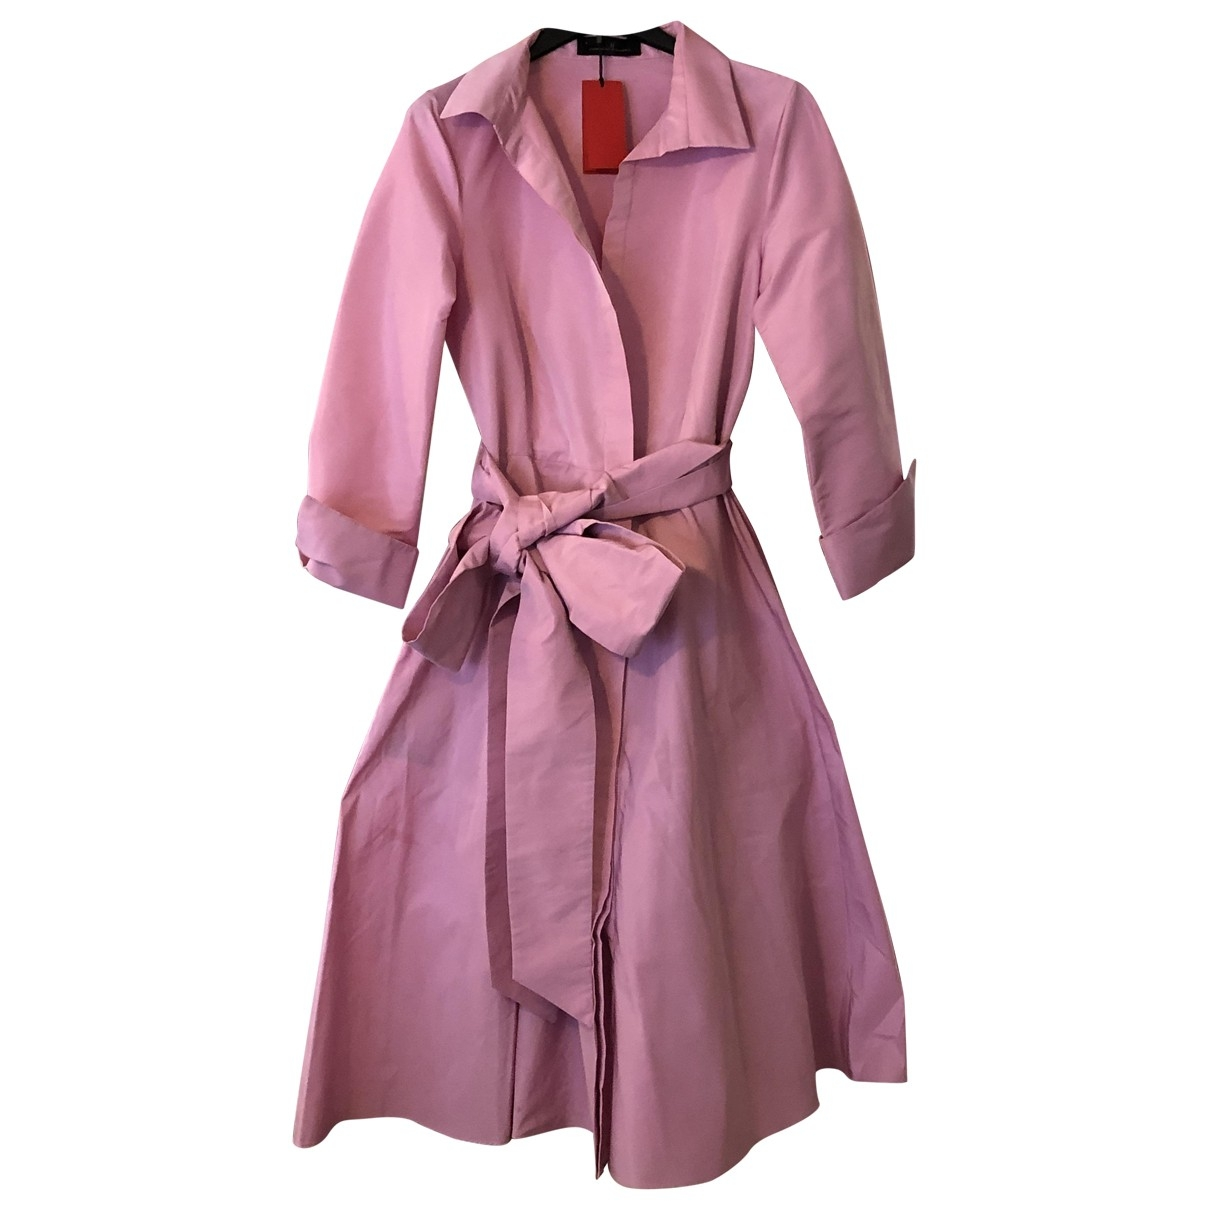 Carolina Herrera \N Pink dress for Women 8 UK